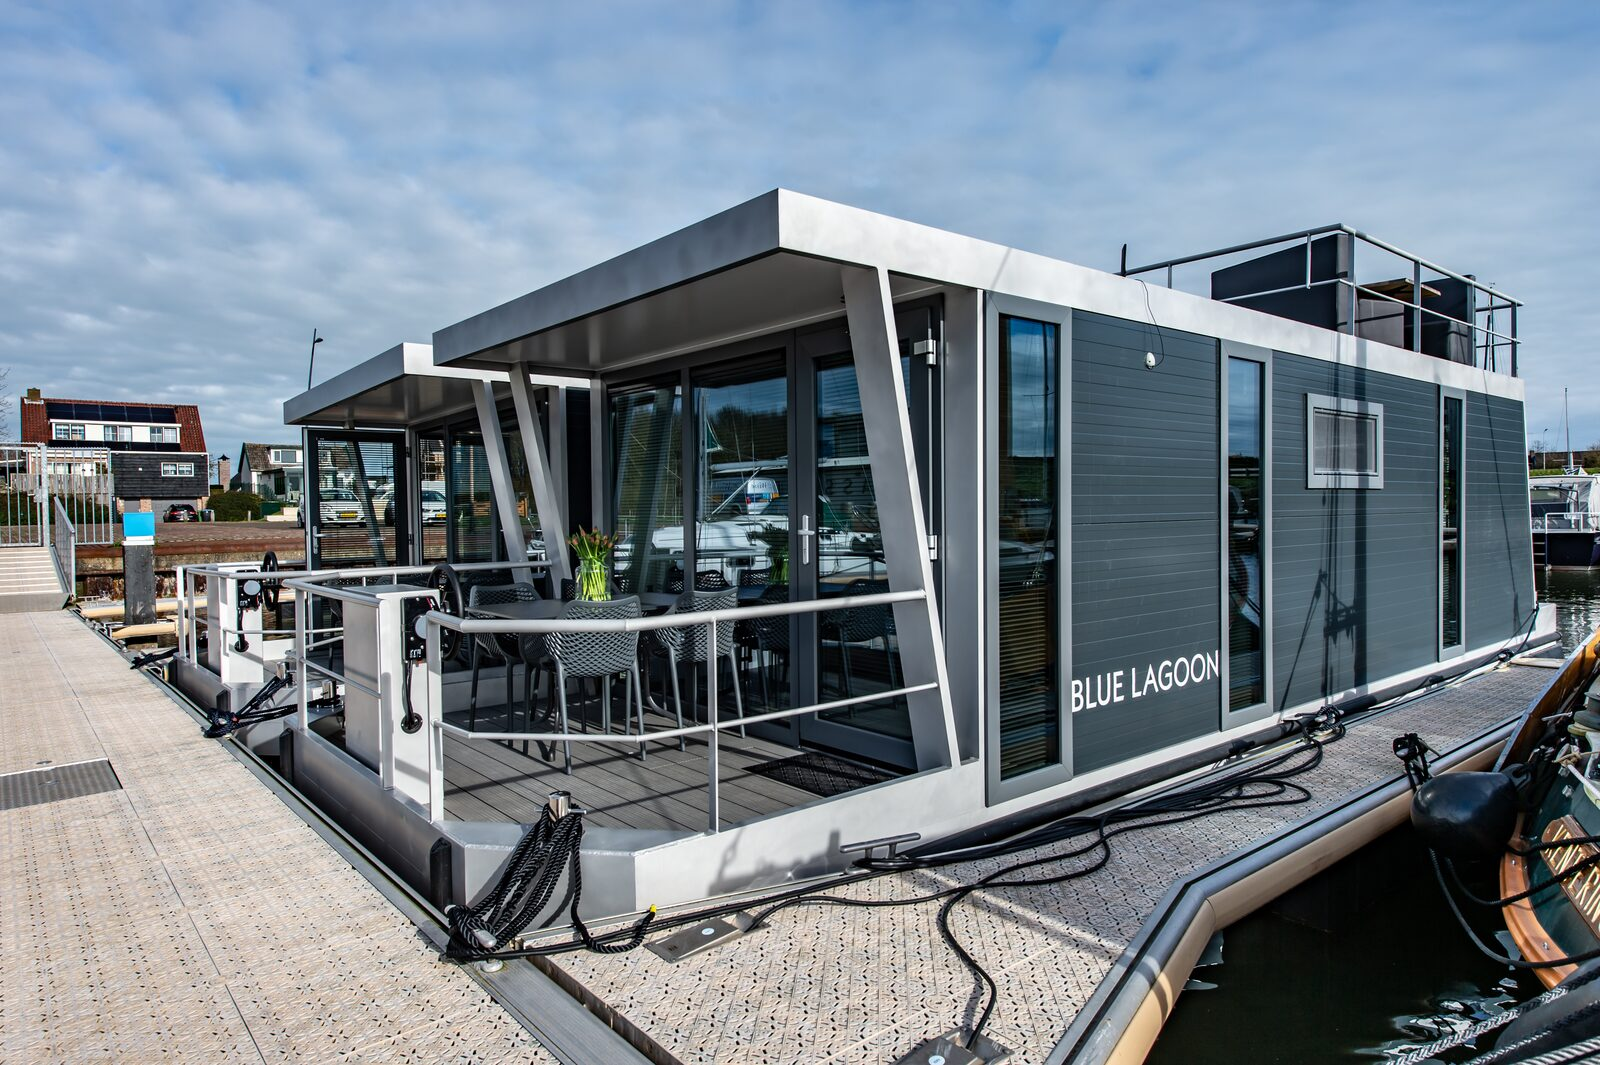 Waterlodge for 4 personsn on the Veerse Meer